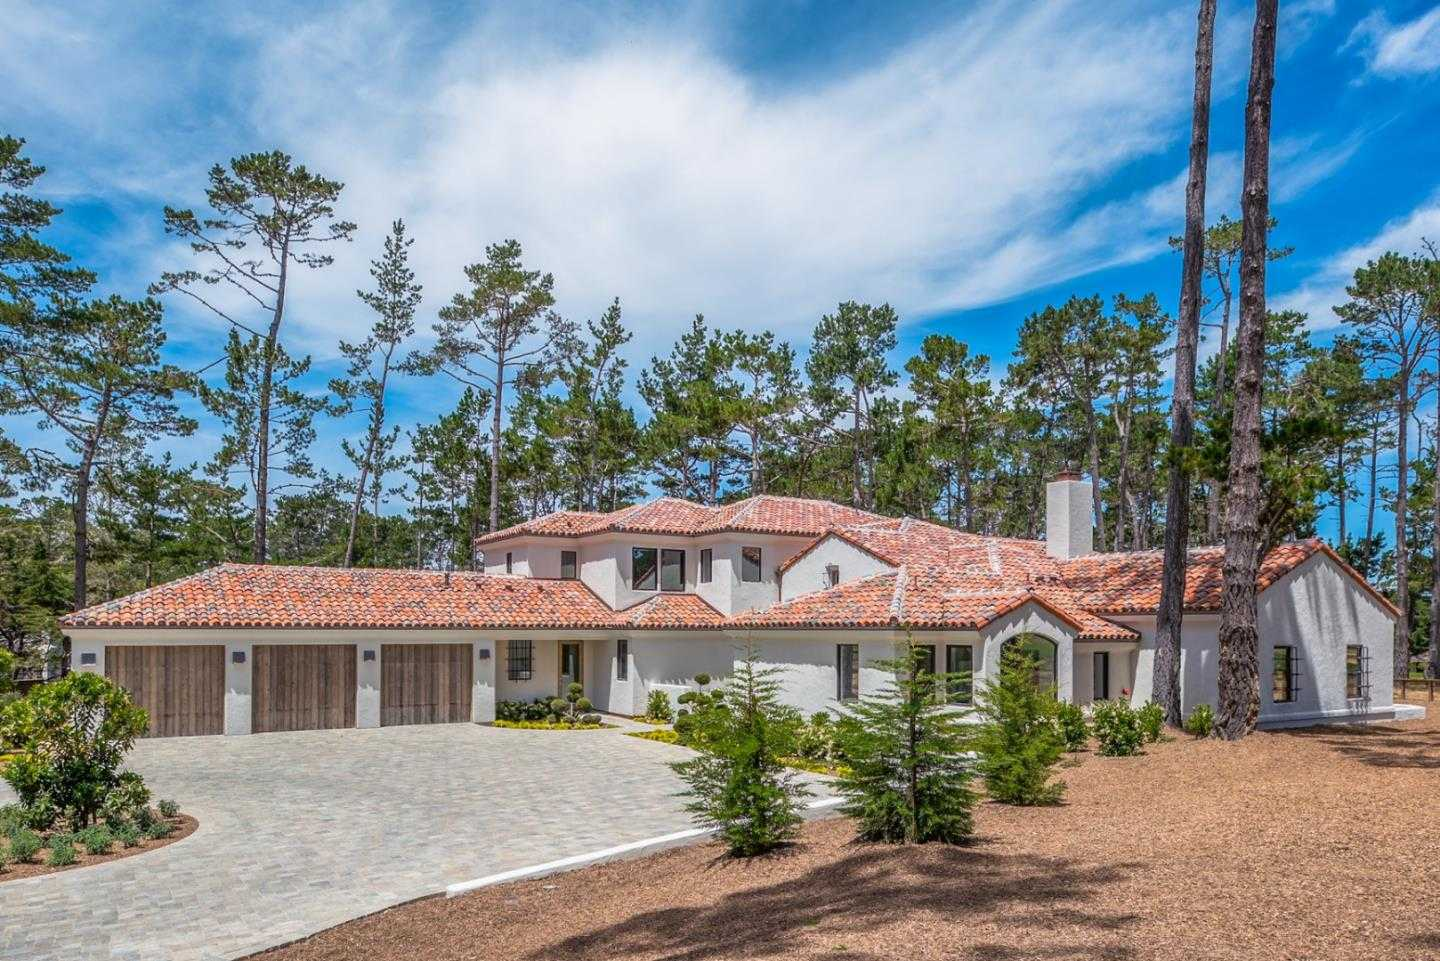 $6,495,000 - 4Br/5Ba -  for Sale in Pebble Beach